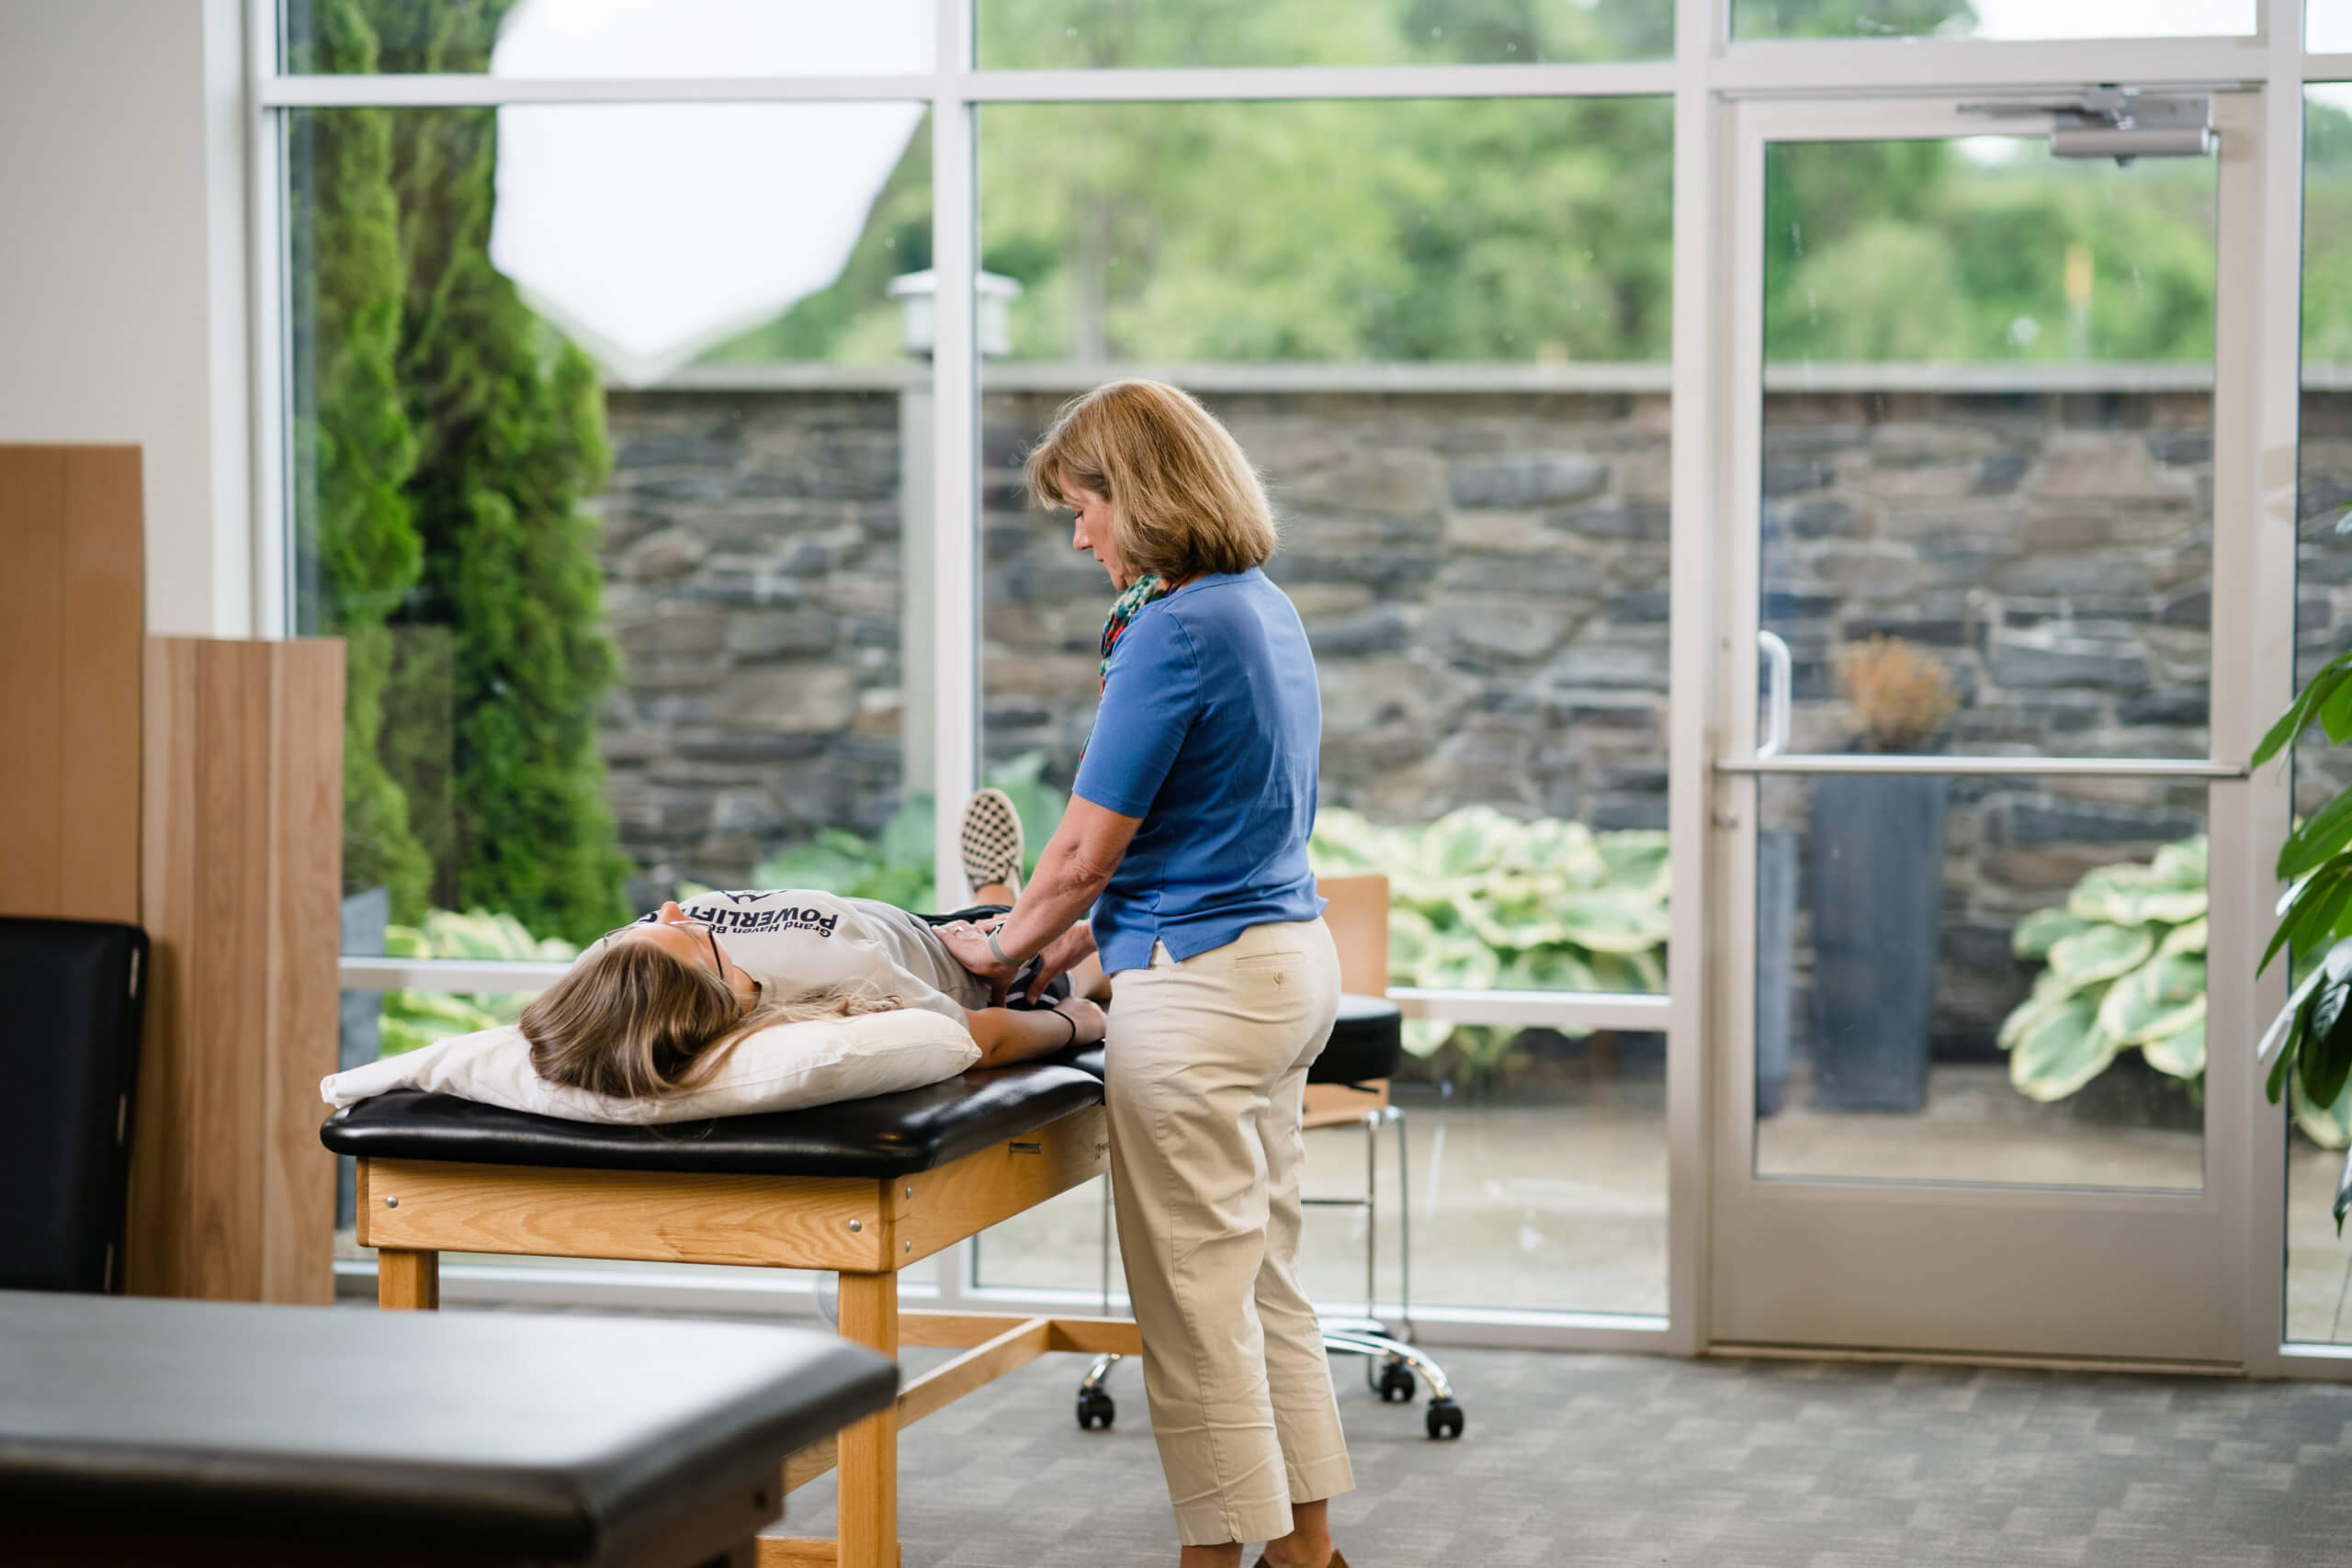 Women's Physical Therapy at i'move